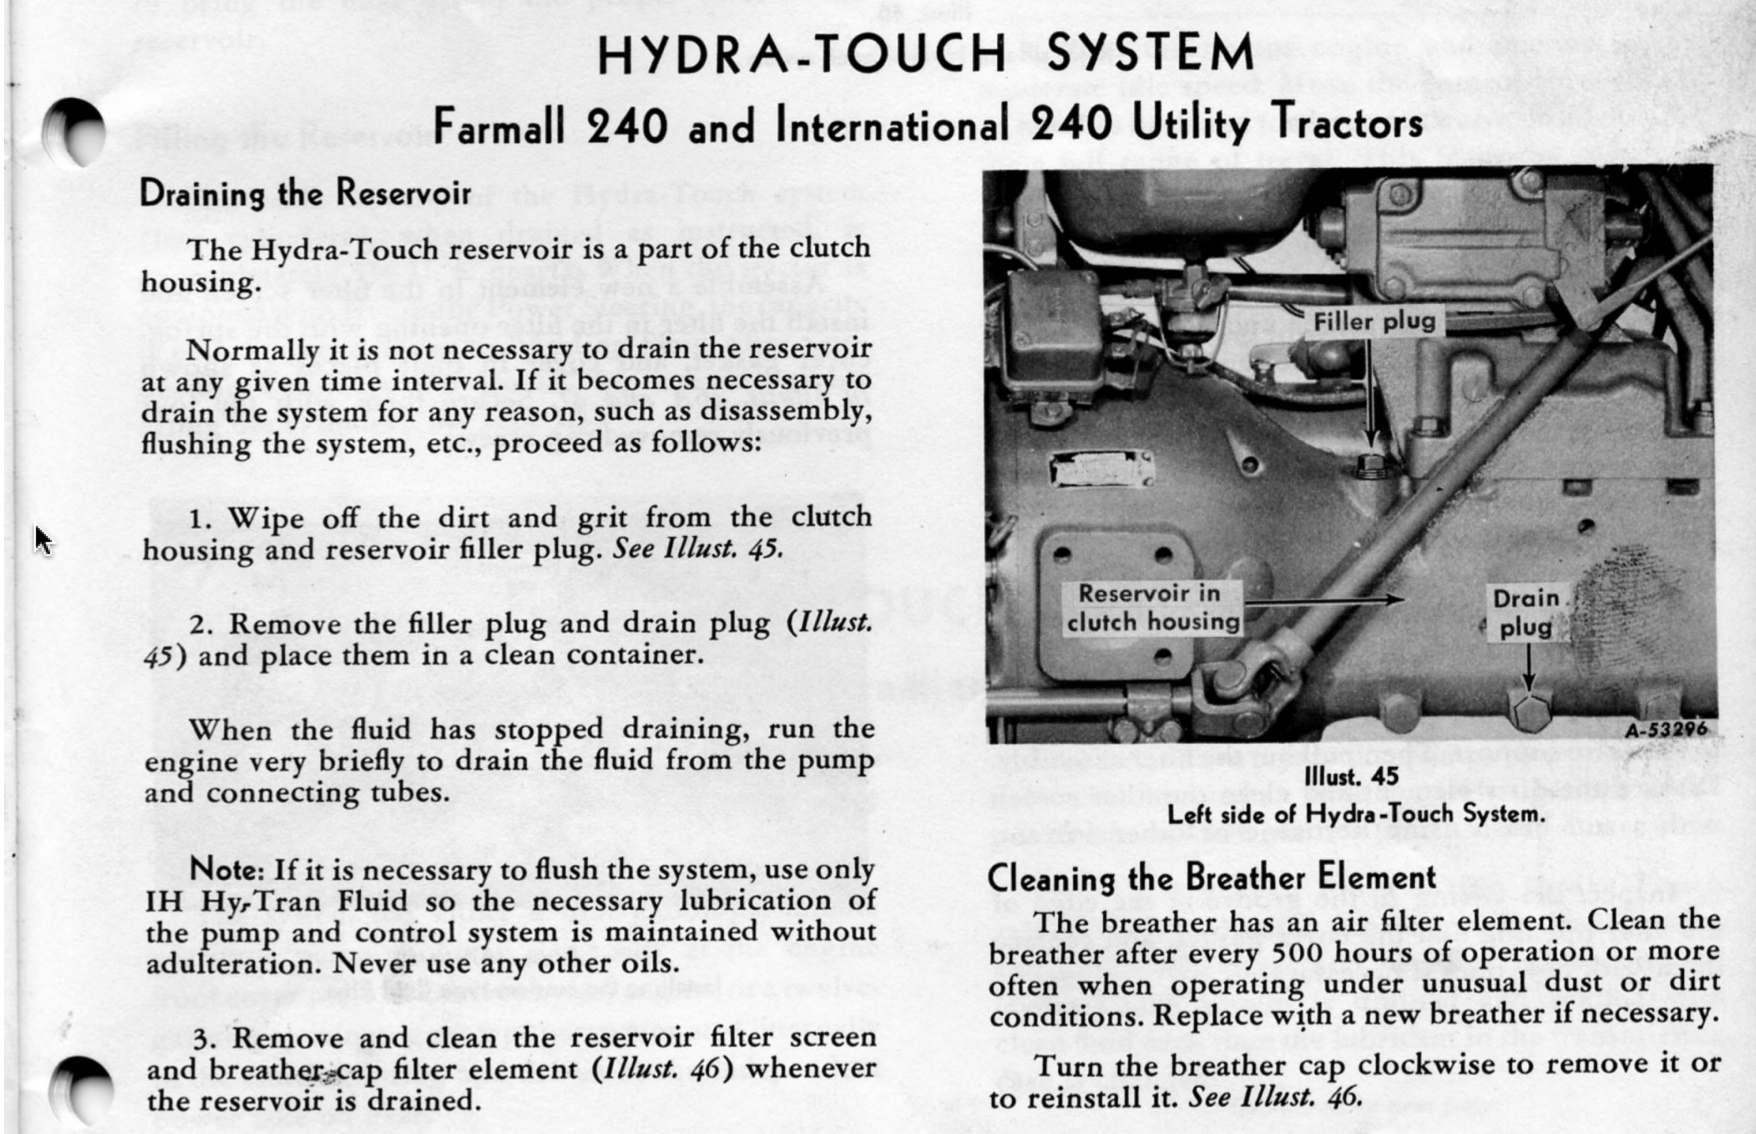 wiring diagram ih 350 utility wiring diagram gp  wiring diagram ih 350 utility wiring library hydro touch system tractor 1961 international 240 utility hydro